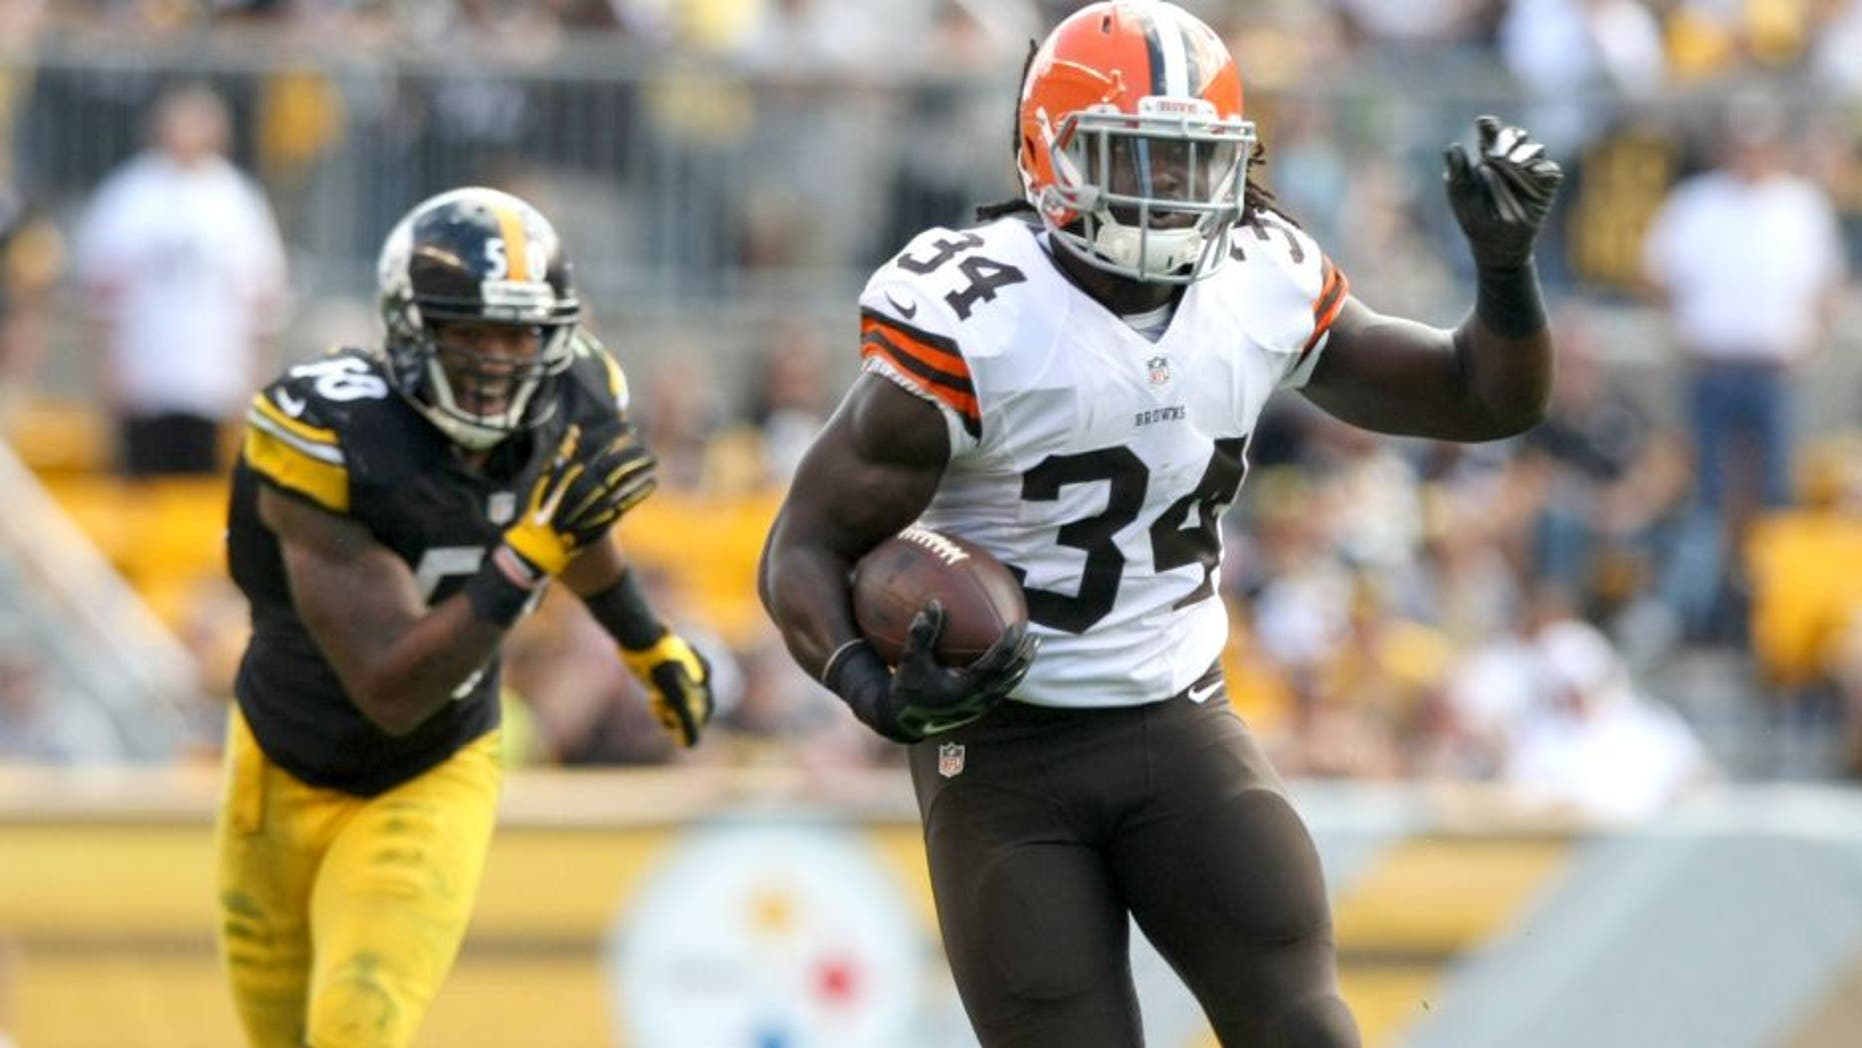 Sep 7, 2014; Pittsburgh, PA, USA; Cleveland Browns running back Isaiah Crowell (34) runs the ball past Pittsburgh Steelers linebacker Ryan Shazier (50) during the second half at Heinz Field. Pittsburgh won the game, 30-27. Mandatory Credit: Jason Bridge-USA TODAY Sports